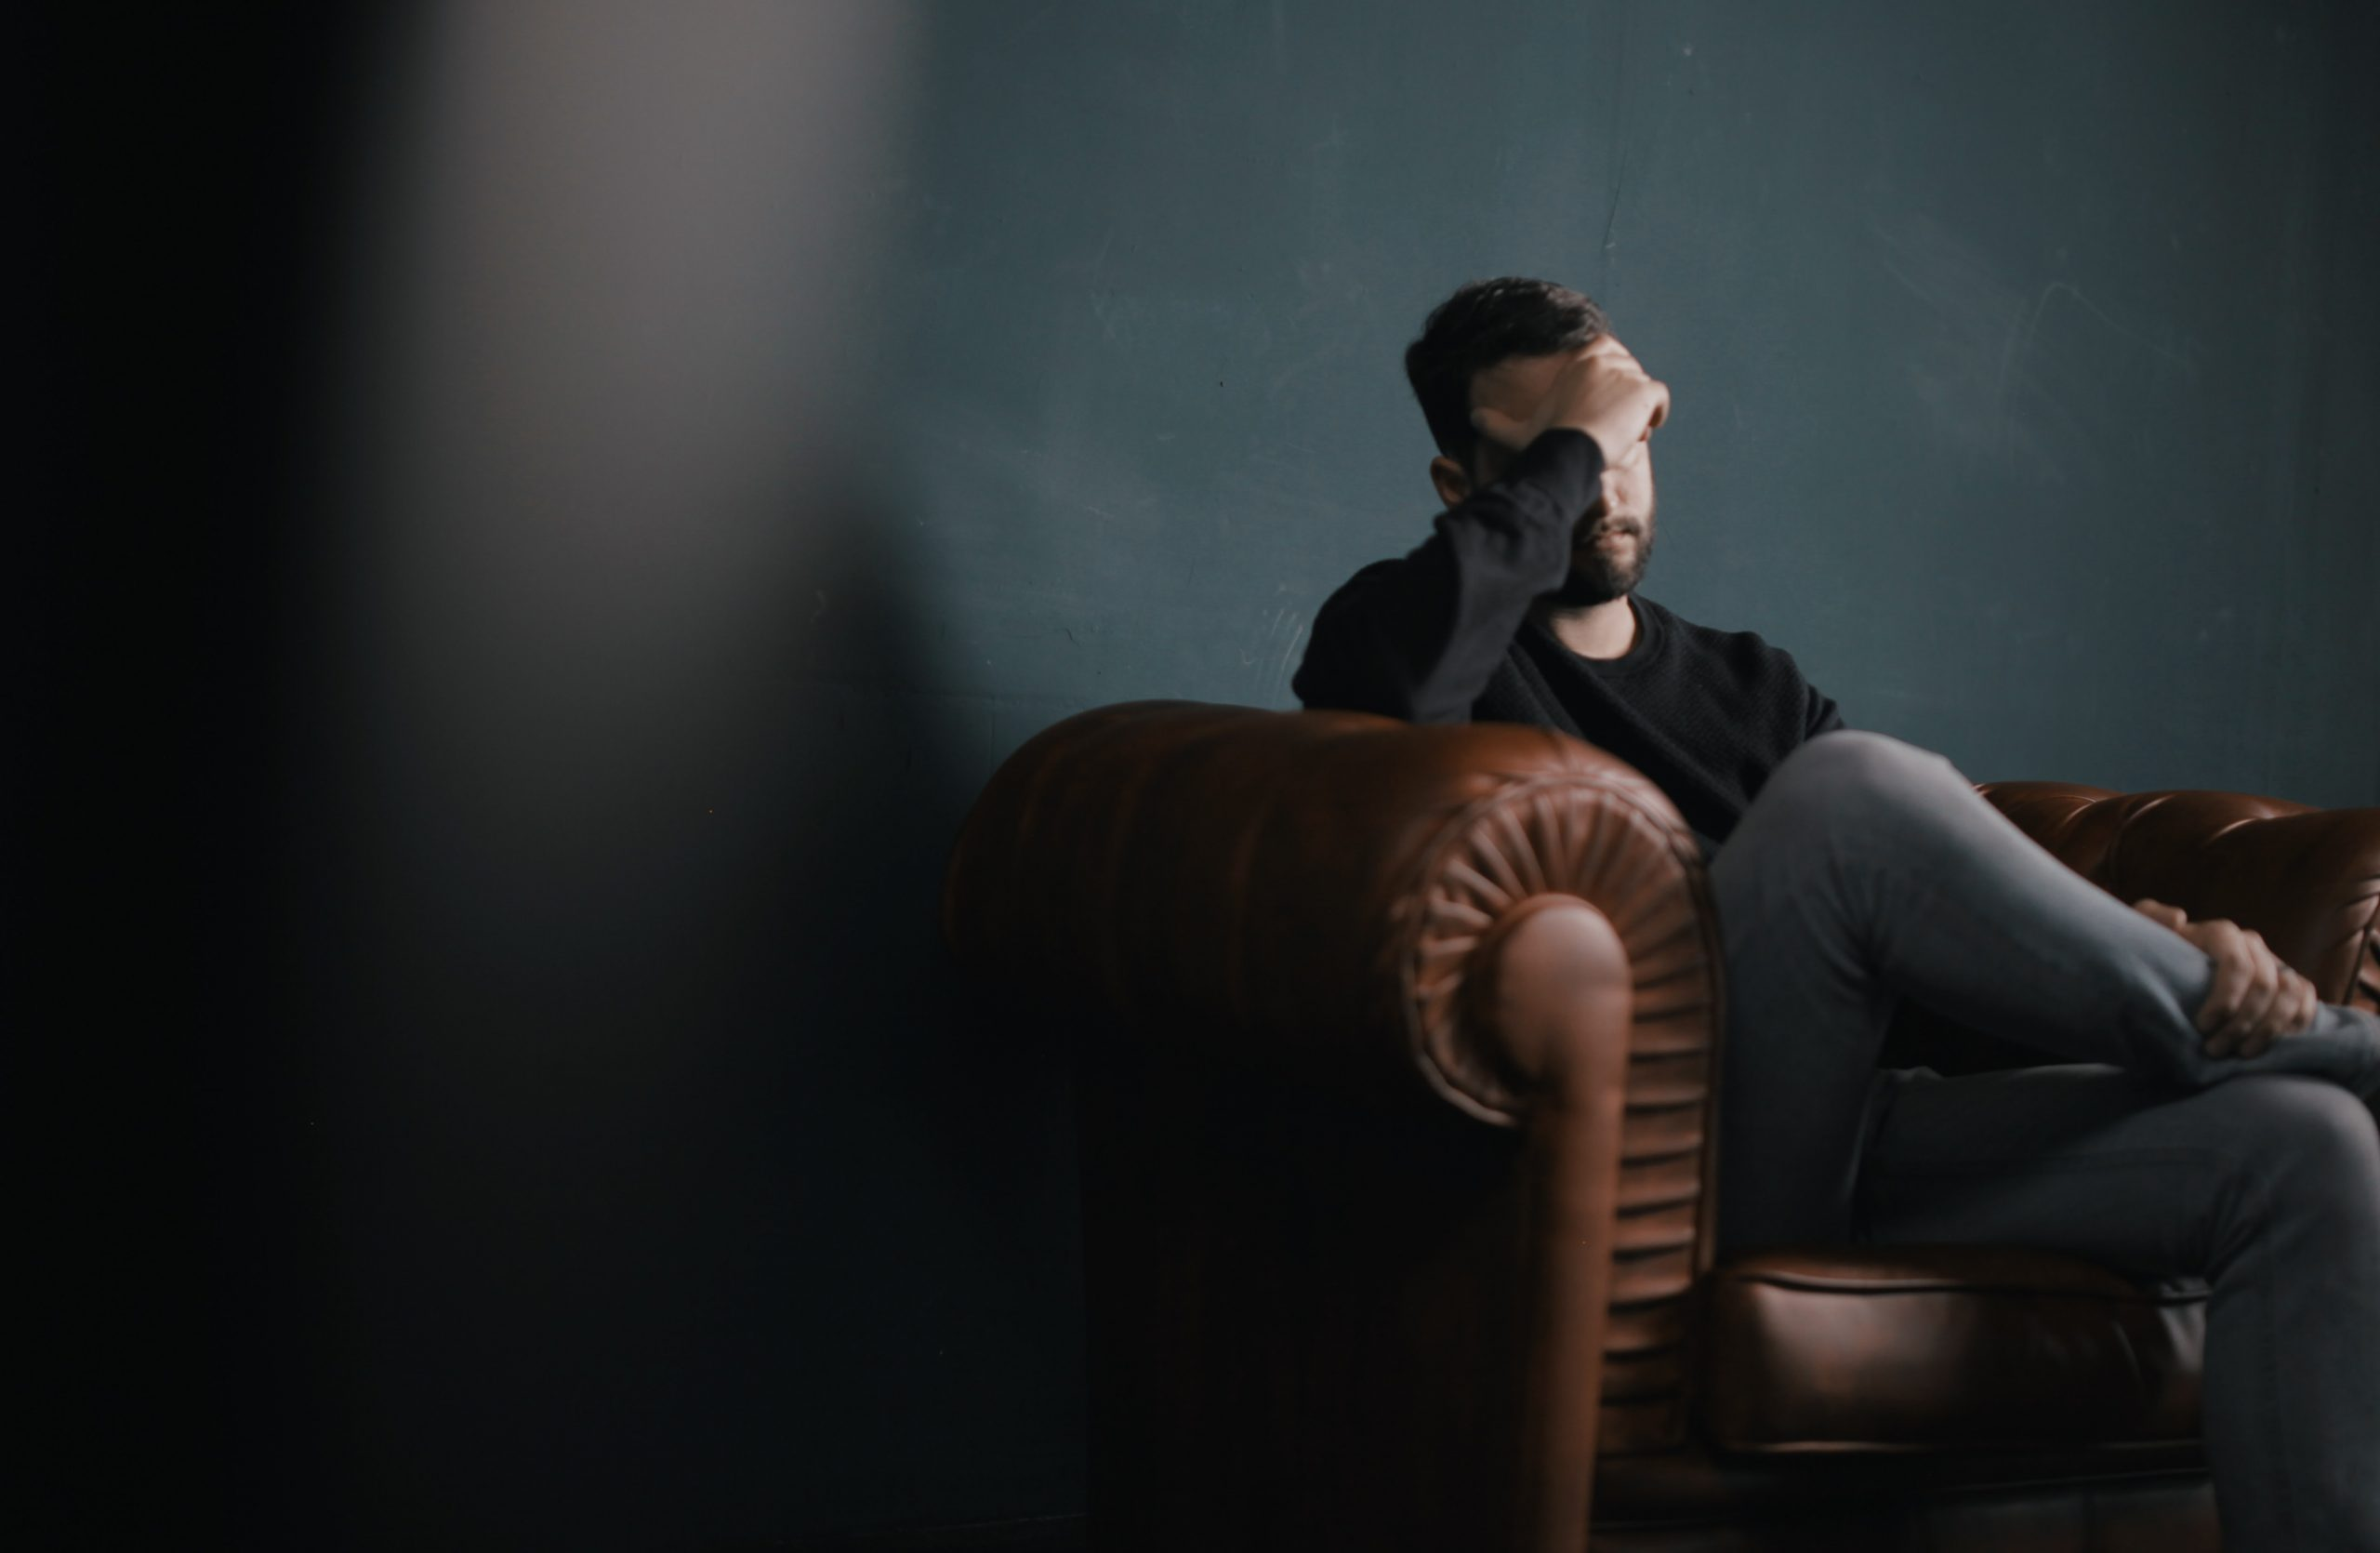 a man affected by emotional investing